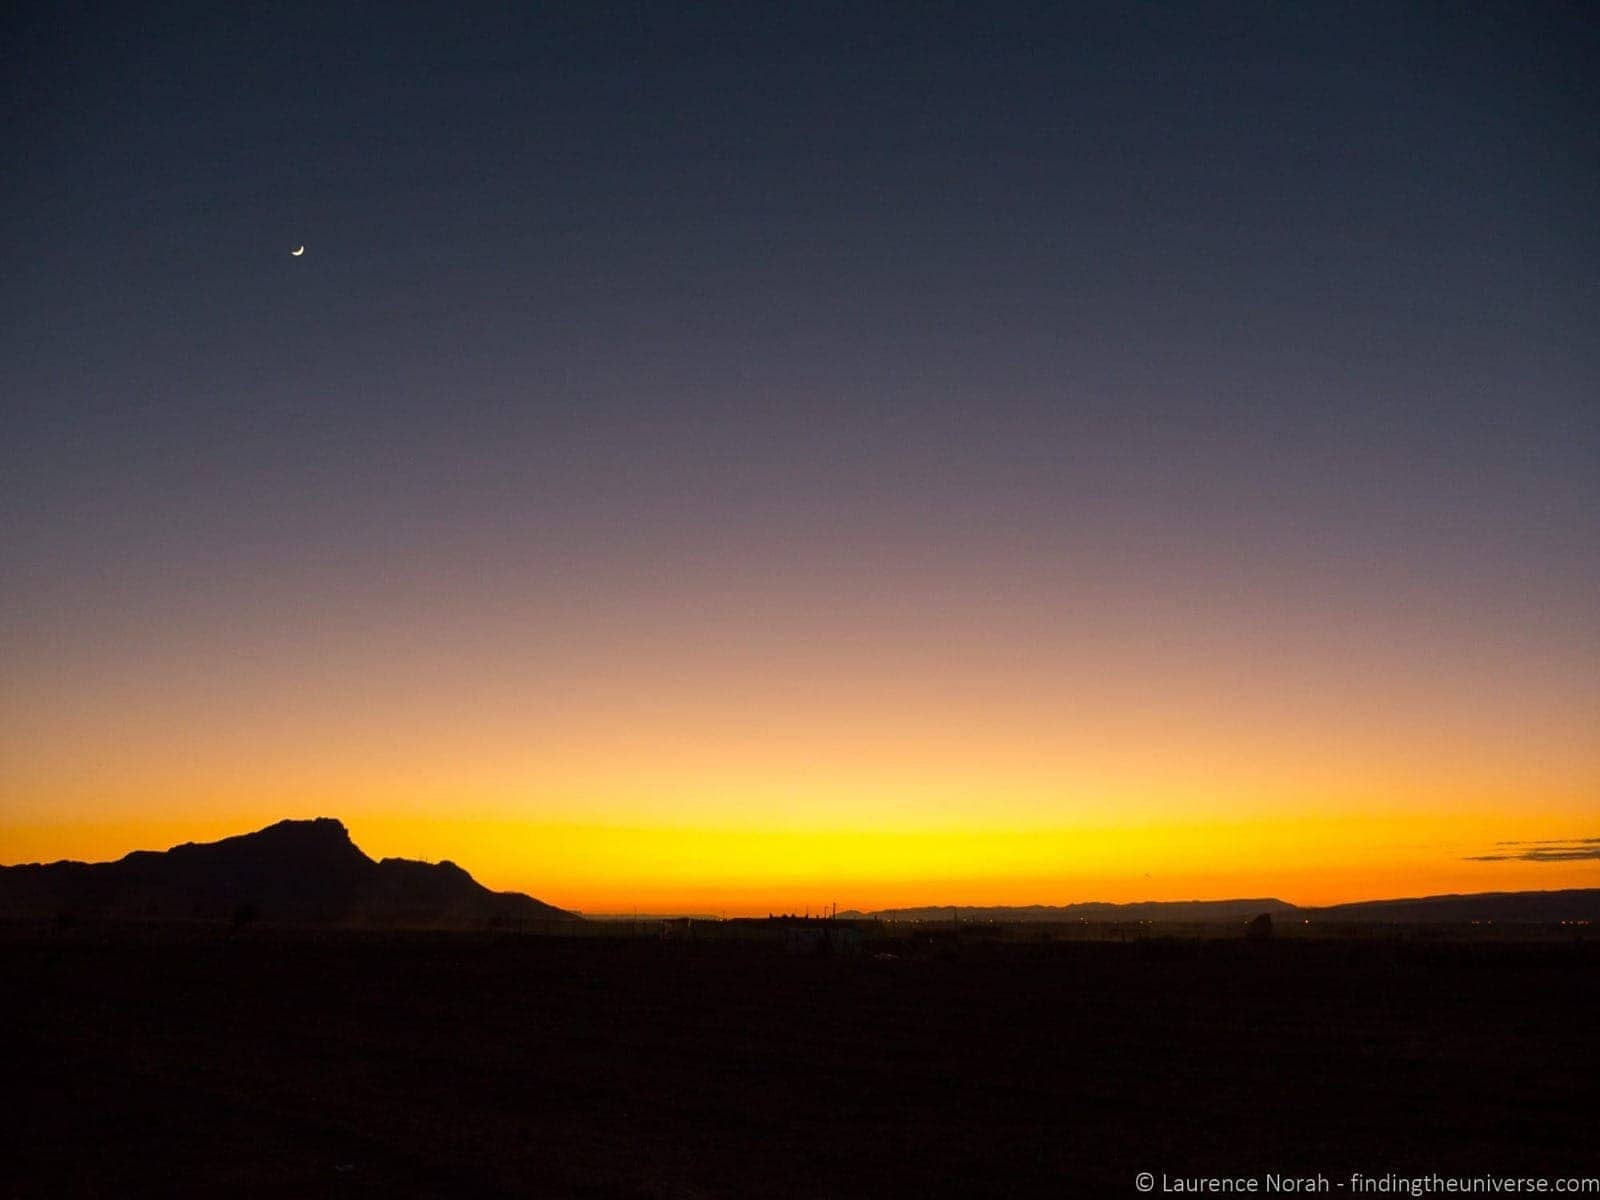 Sunset in desert Morcco with moon